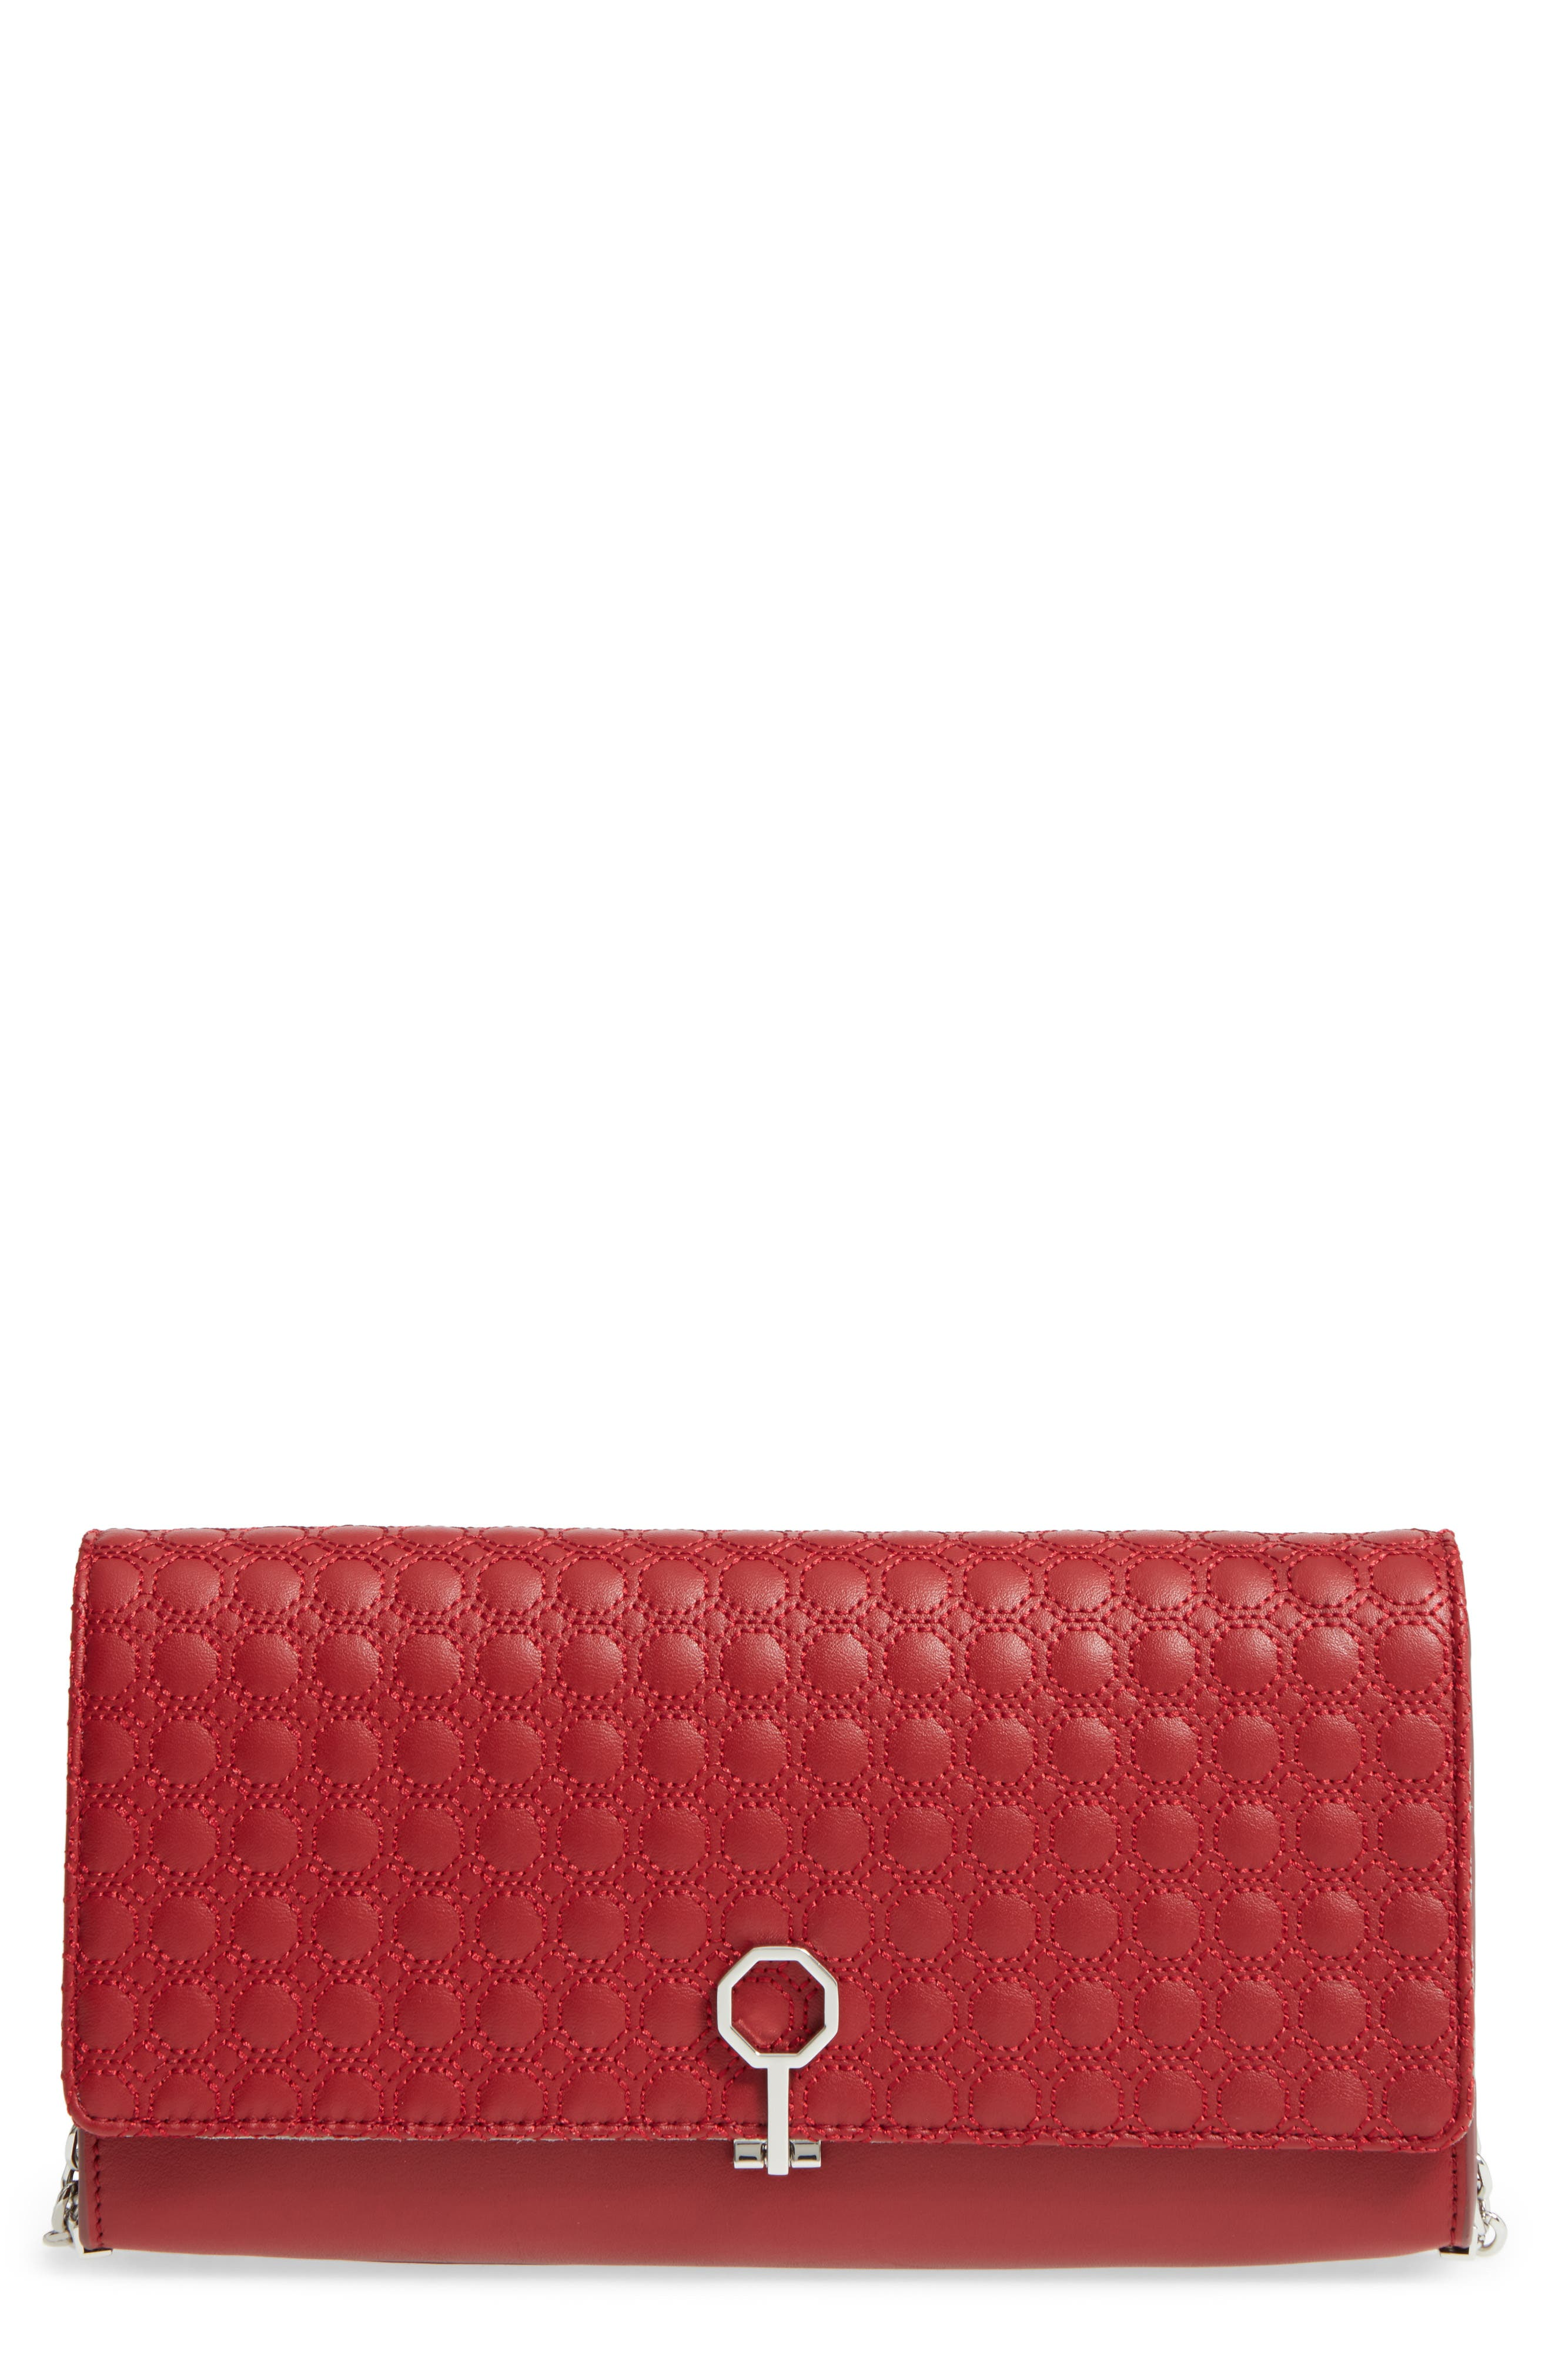 'Yvet' Leather Flap Clutch,                             Main thumbnail 1, color,                             Cherry Red